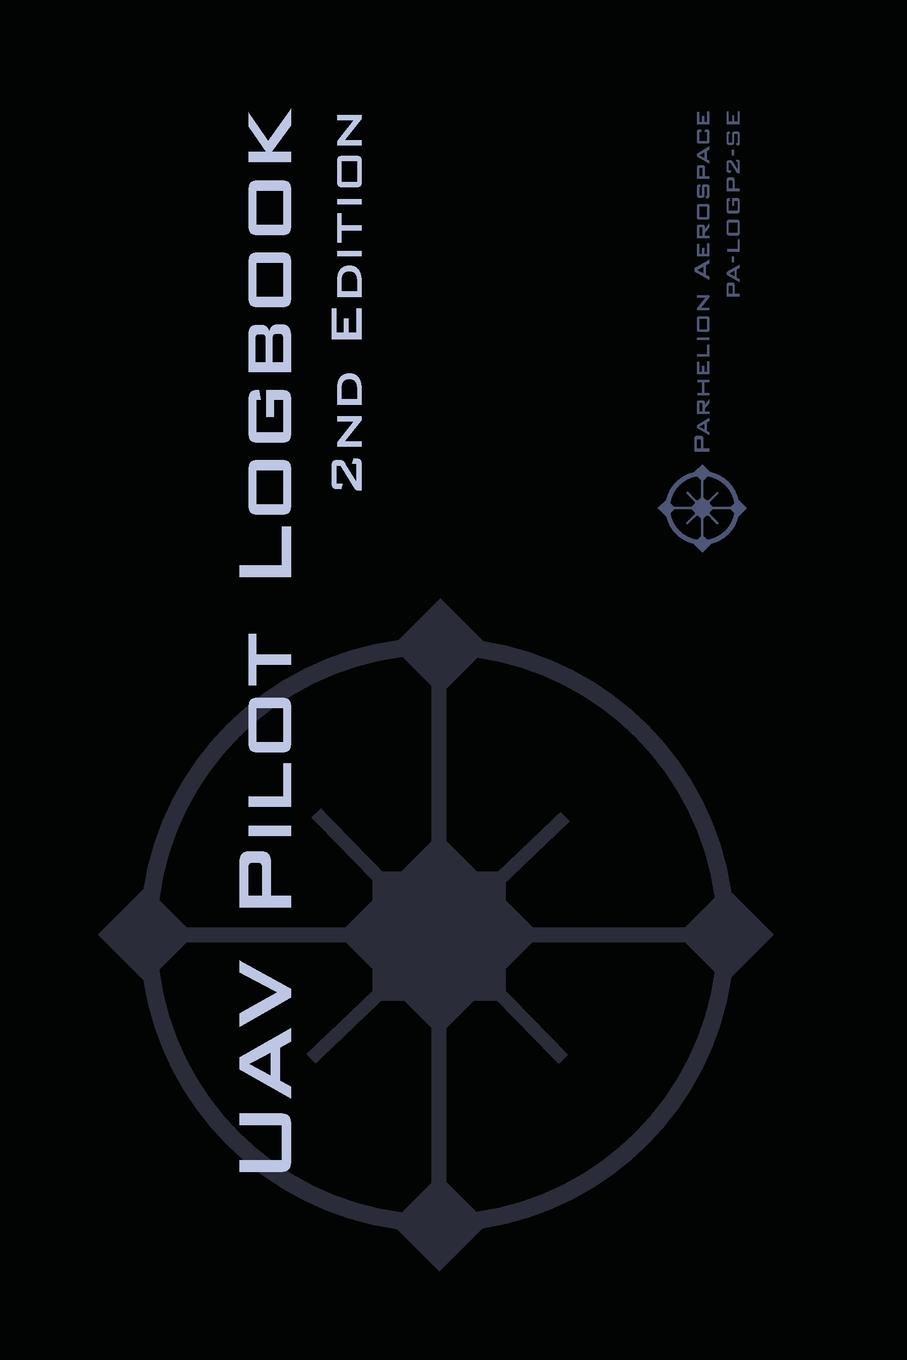 Michael L. Rampey UAV PILOT LOGBOOK 2nd Edition. A Comprehensive Drone Flight Logbook for Professional and Serious Hobbyist Drone Pilots - Log Your Drone Flights Like a Pro.